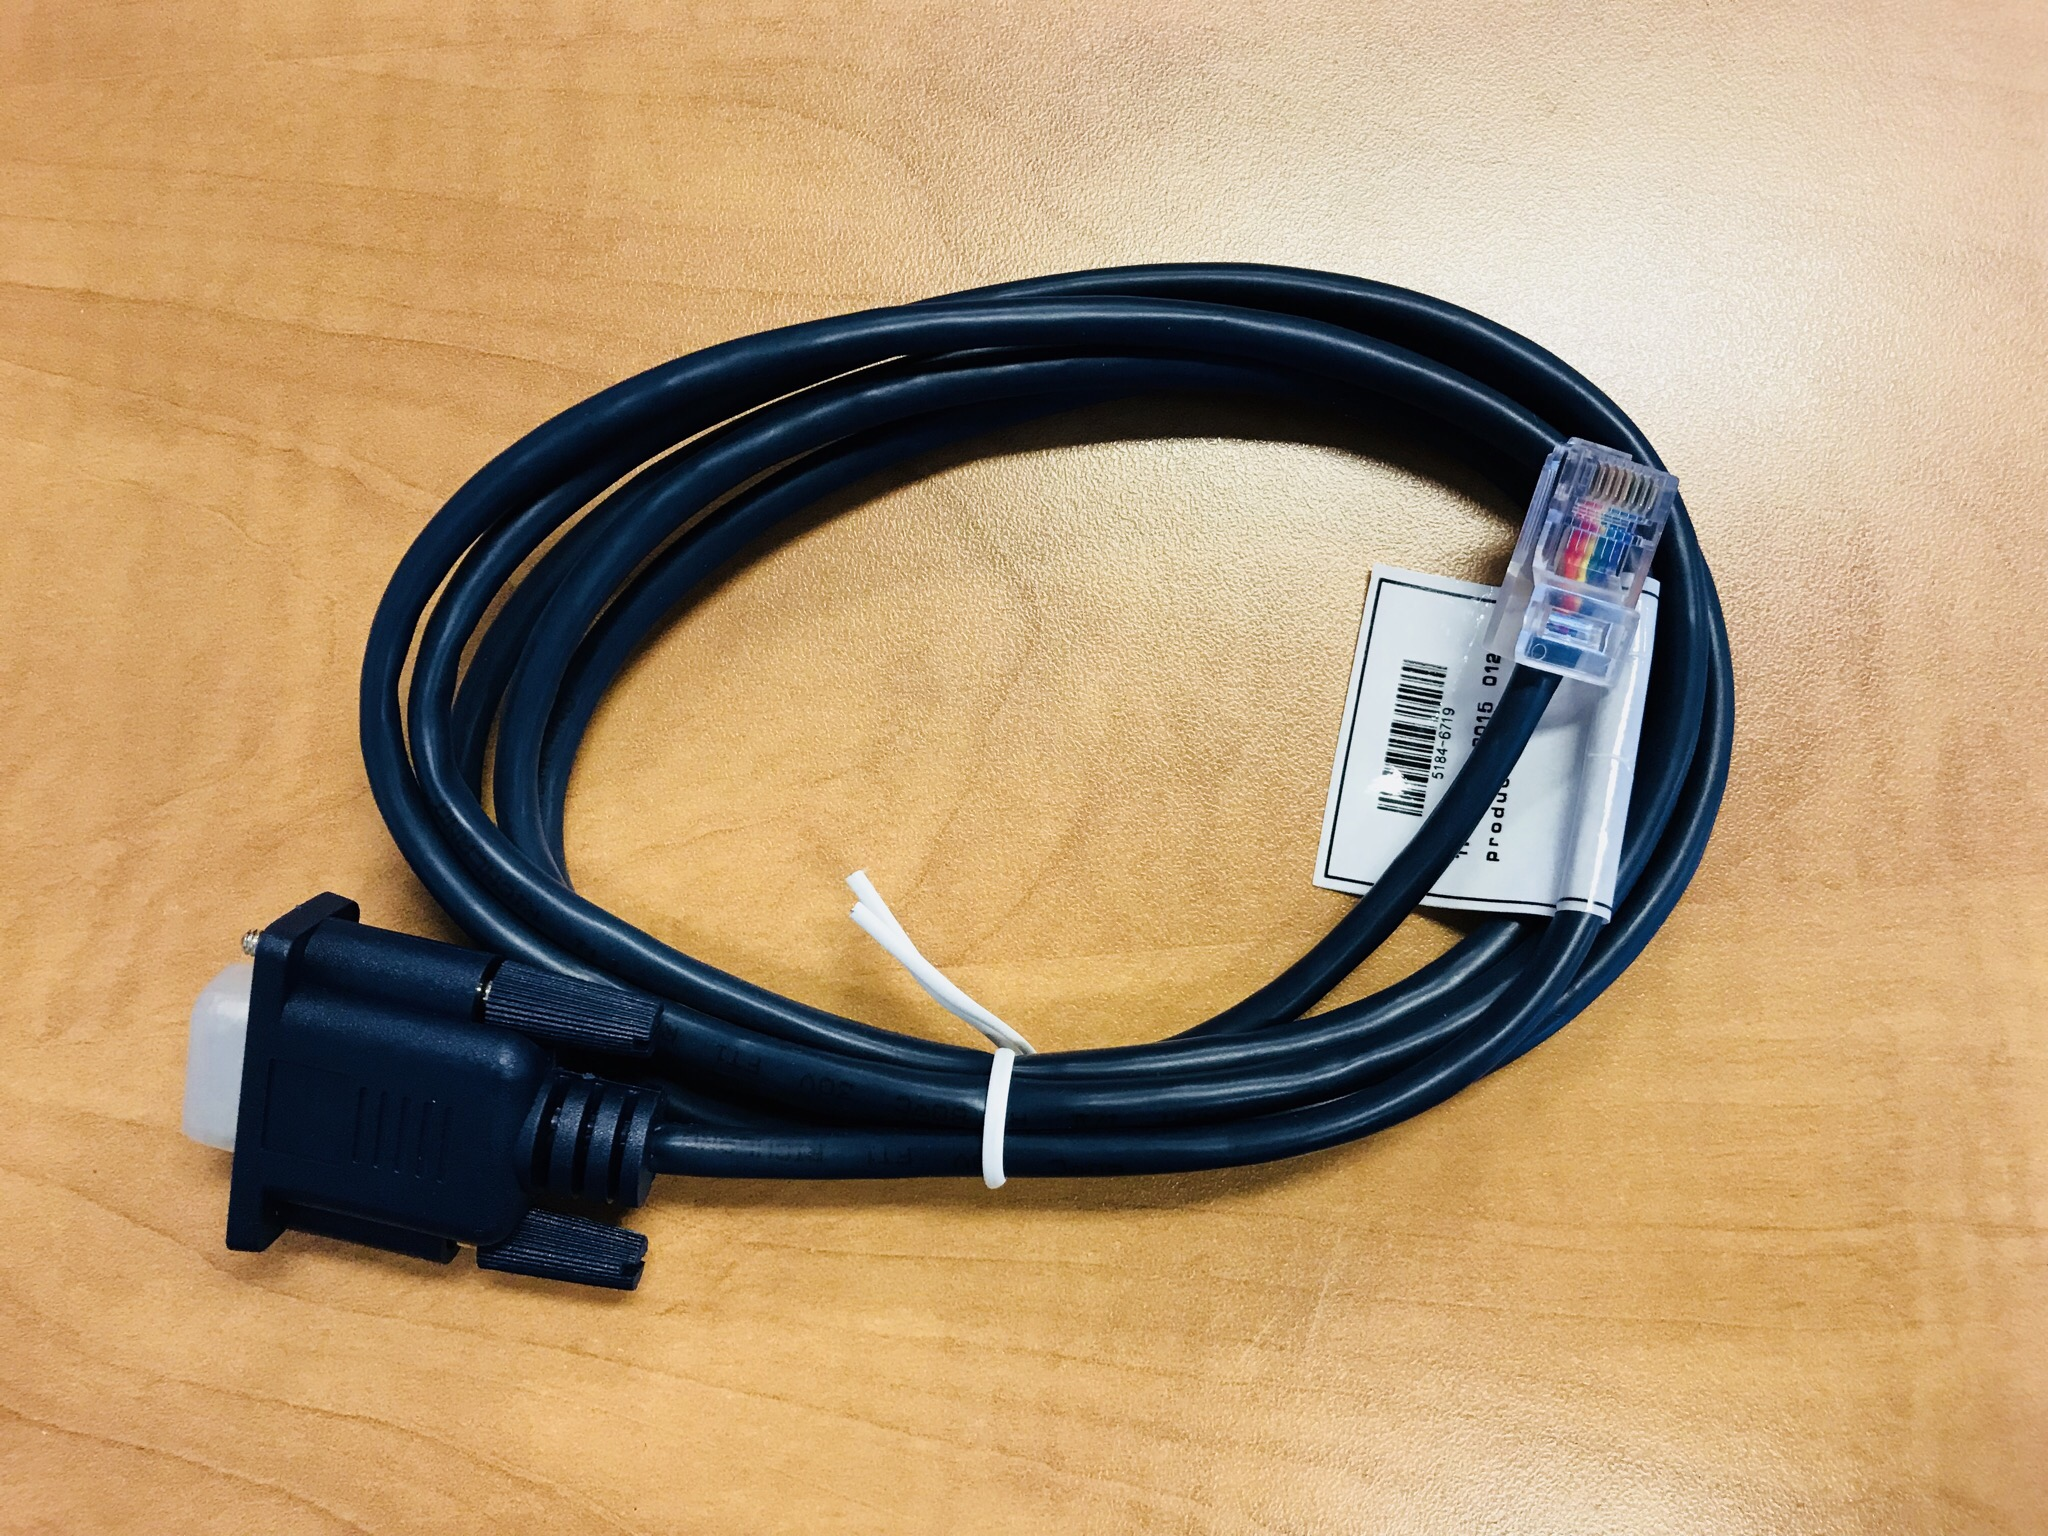 Rs232 Null Modem Wiring